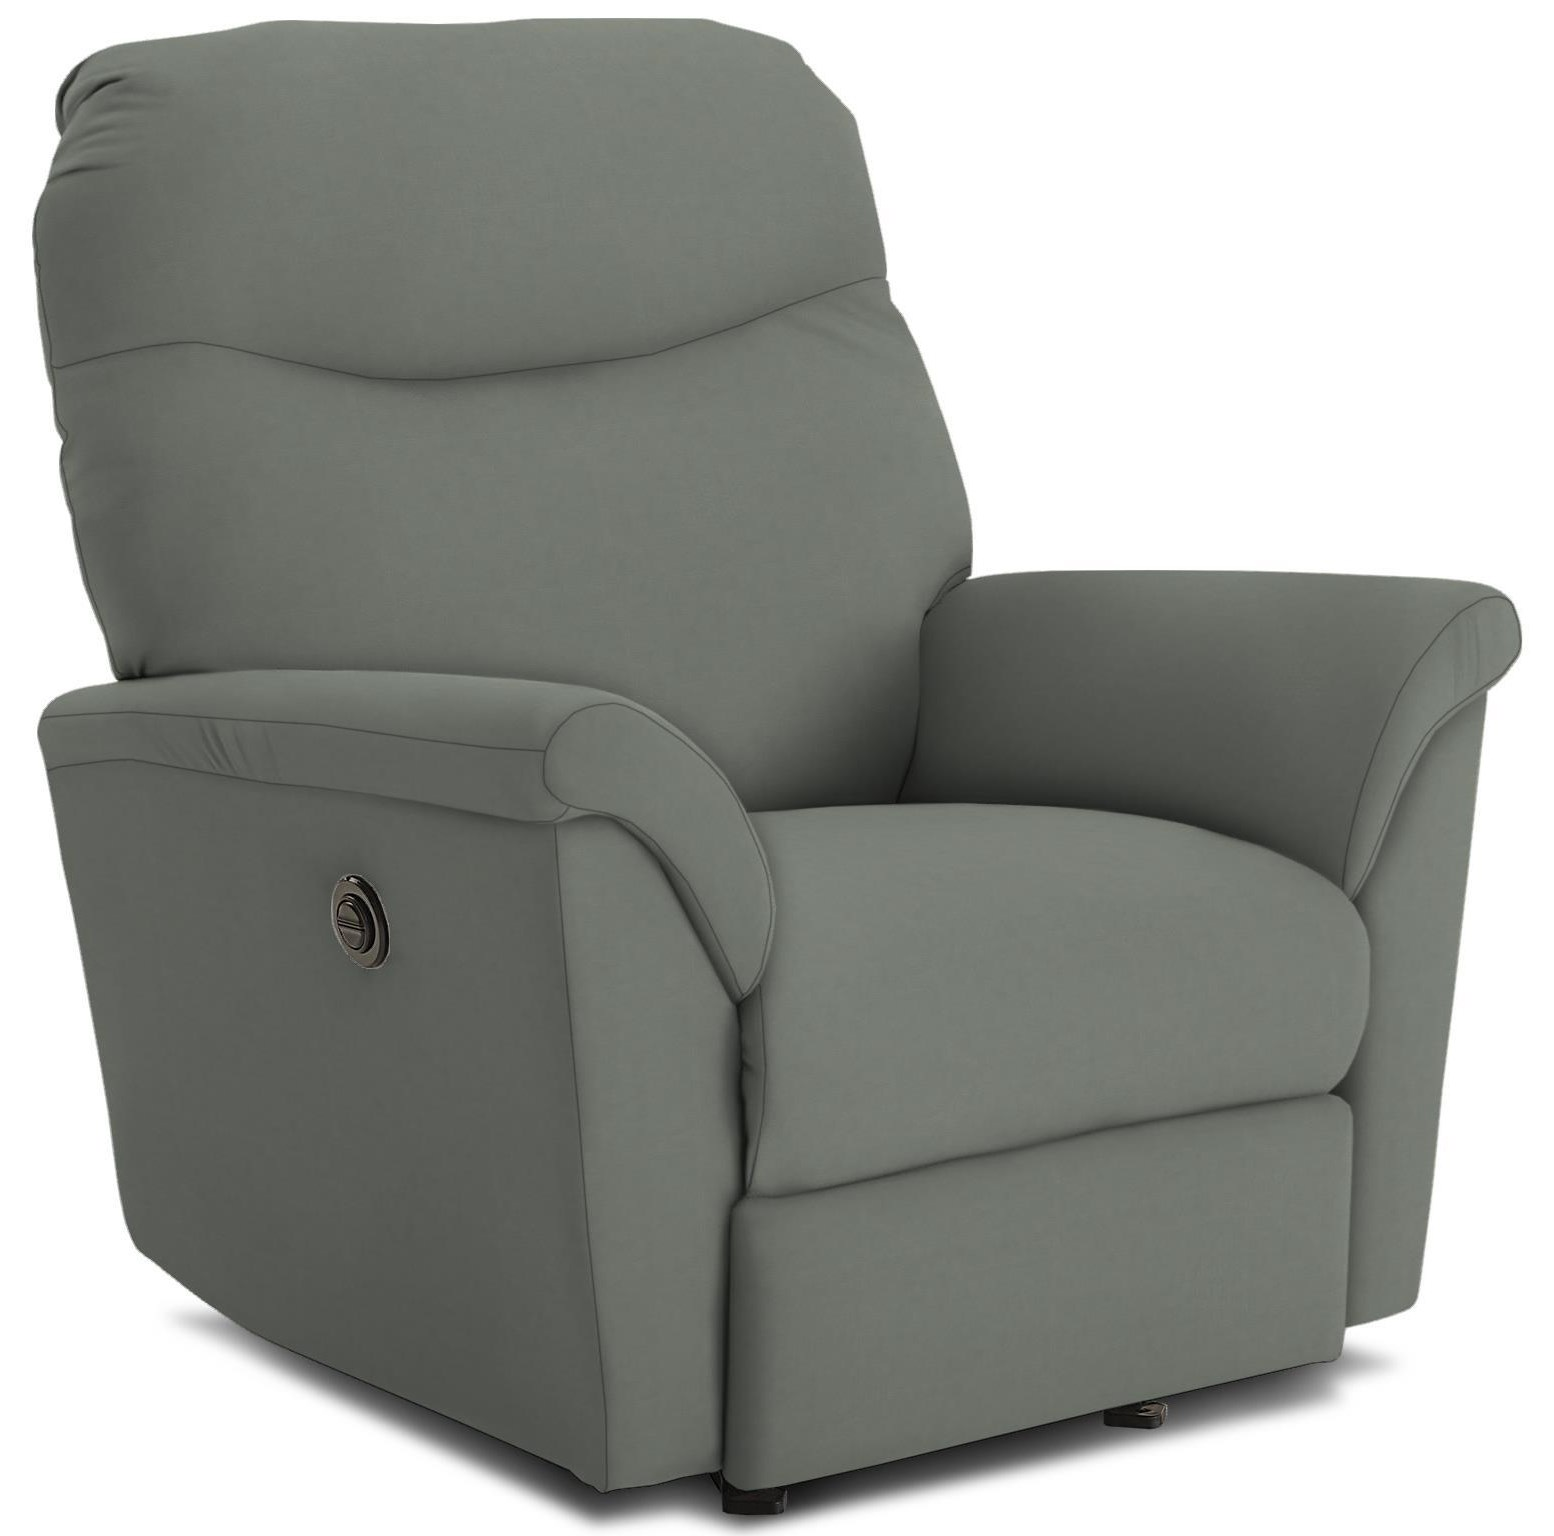 Mabry Power Headrest Rocking Recliner by Best Home Furnishings at Crowley Furniture & Mattress